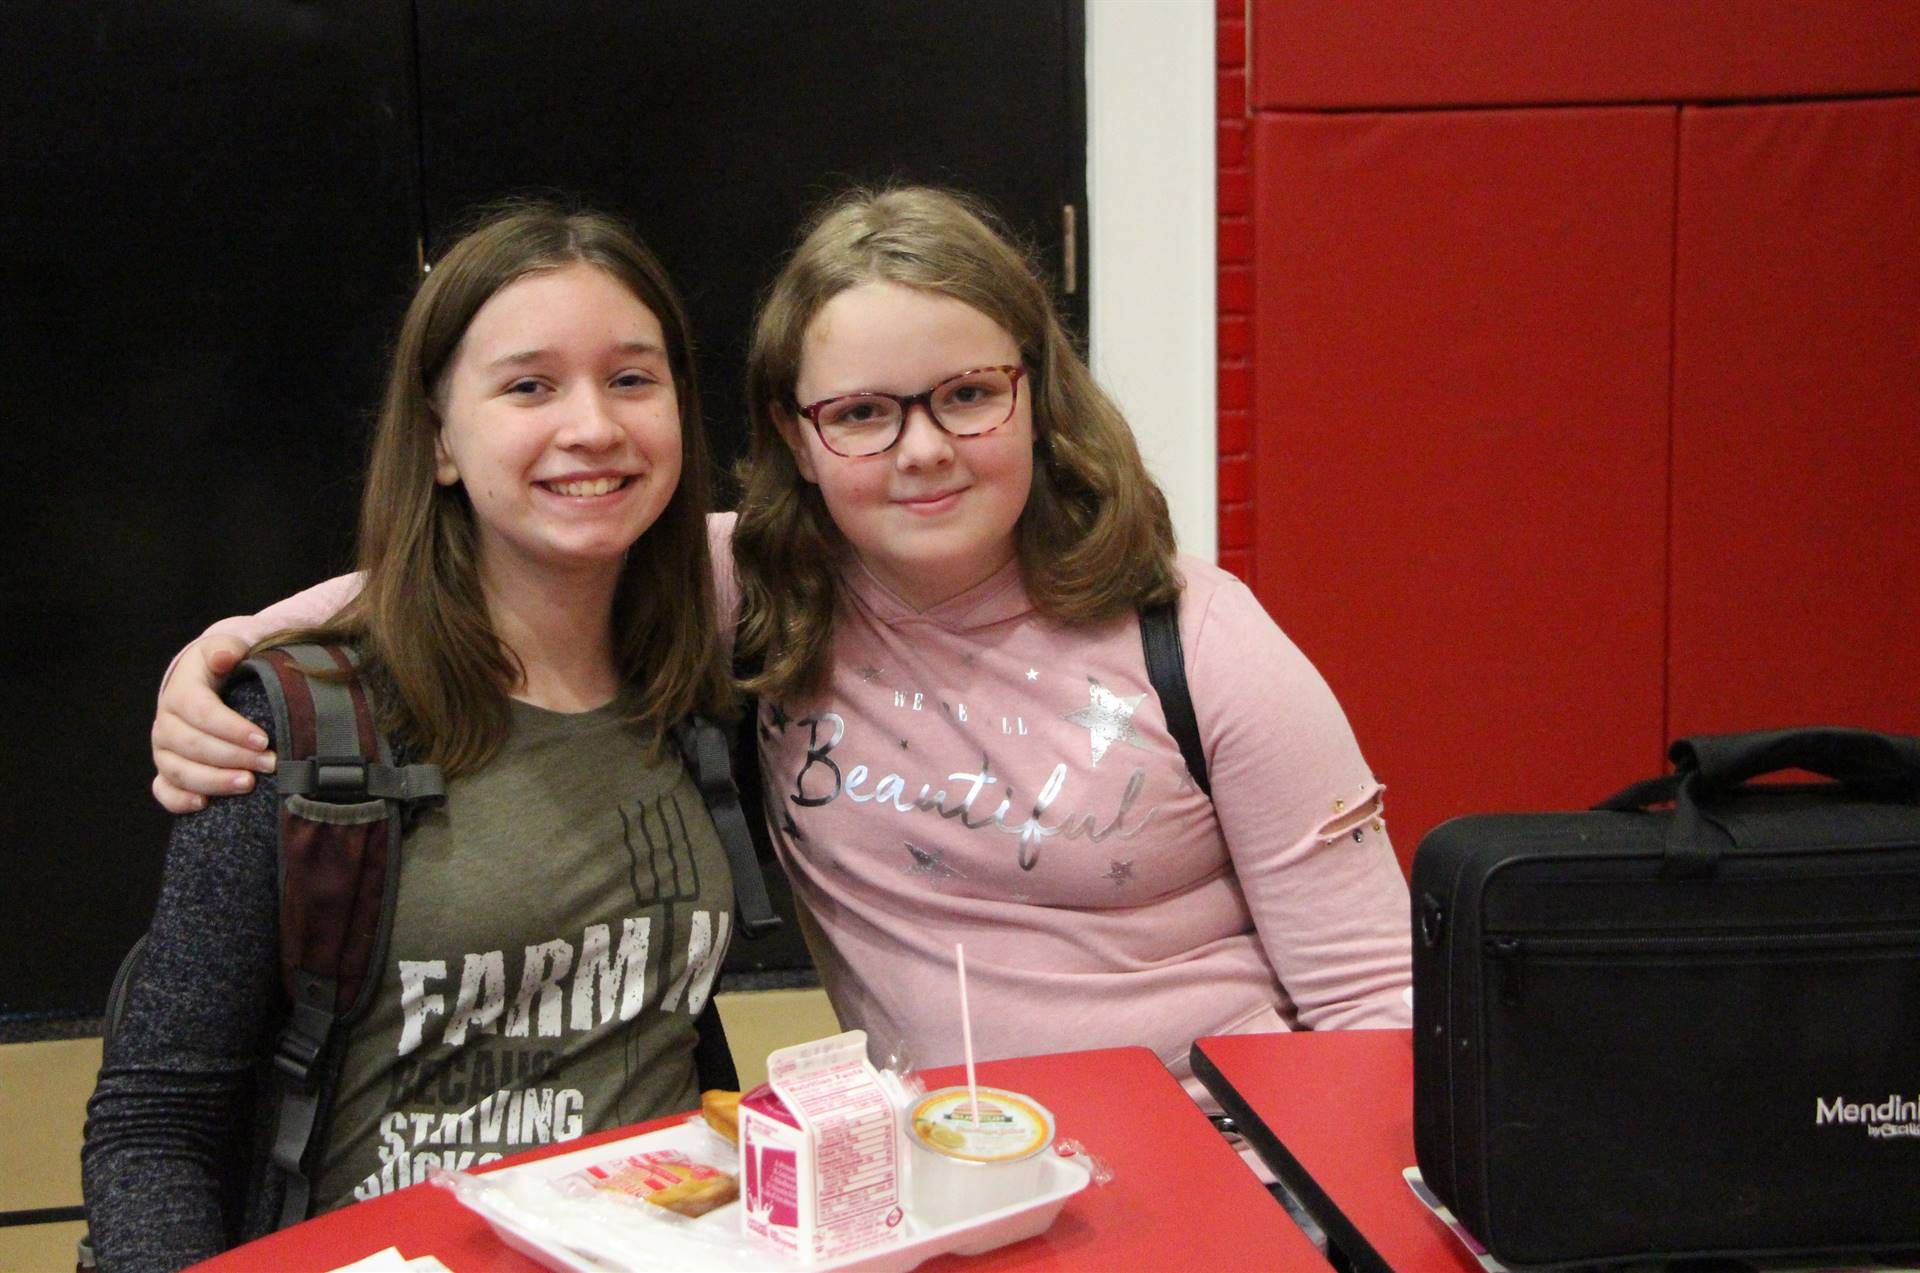 Two girls in cafeteria